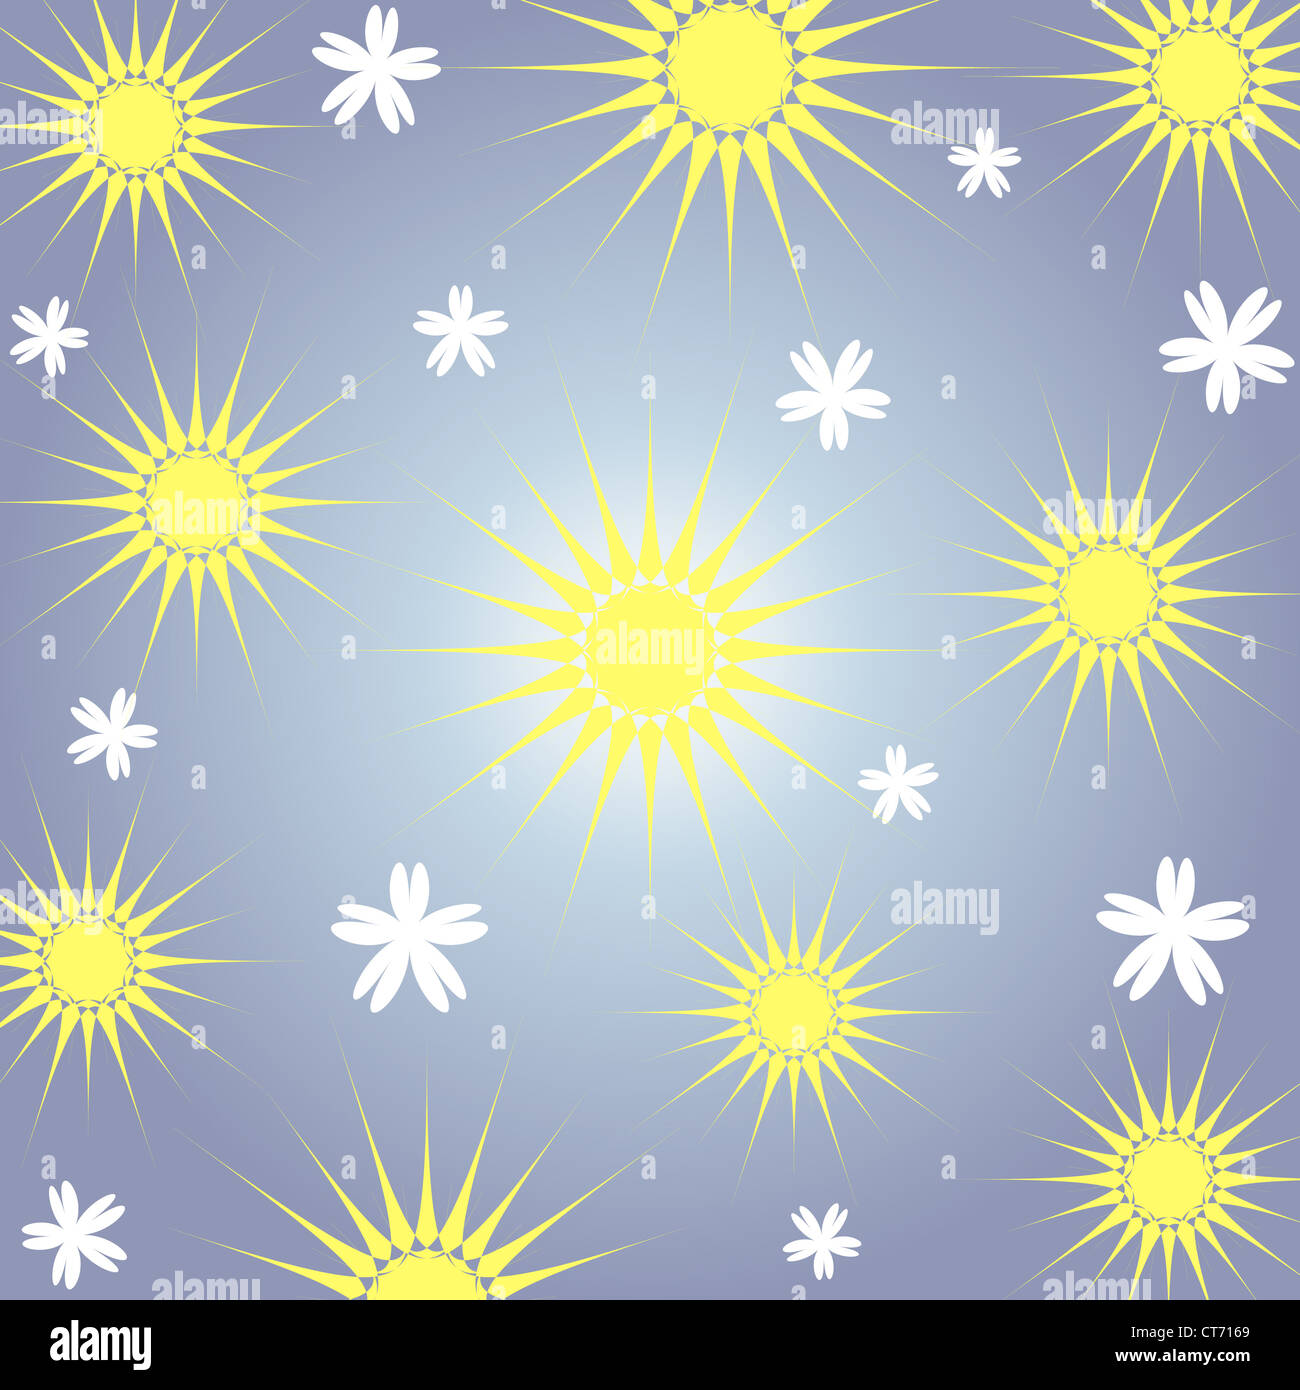 Seamless artistic stars and flowers pattern Stock Photo